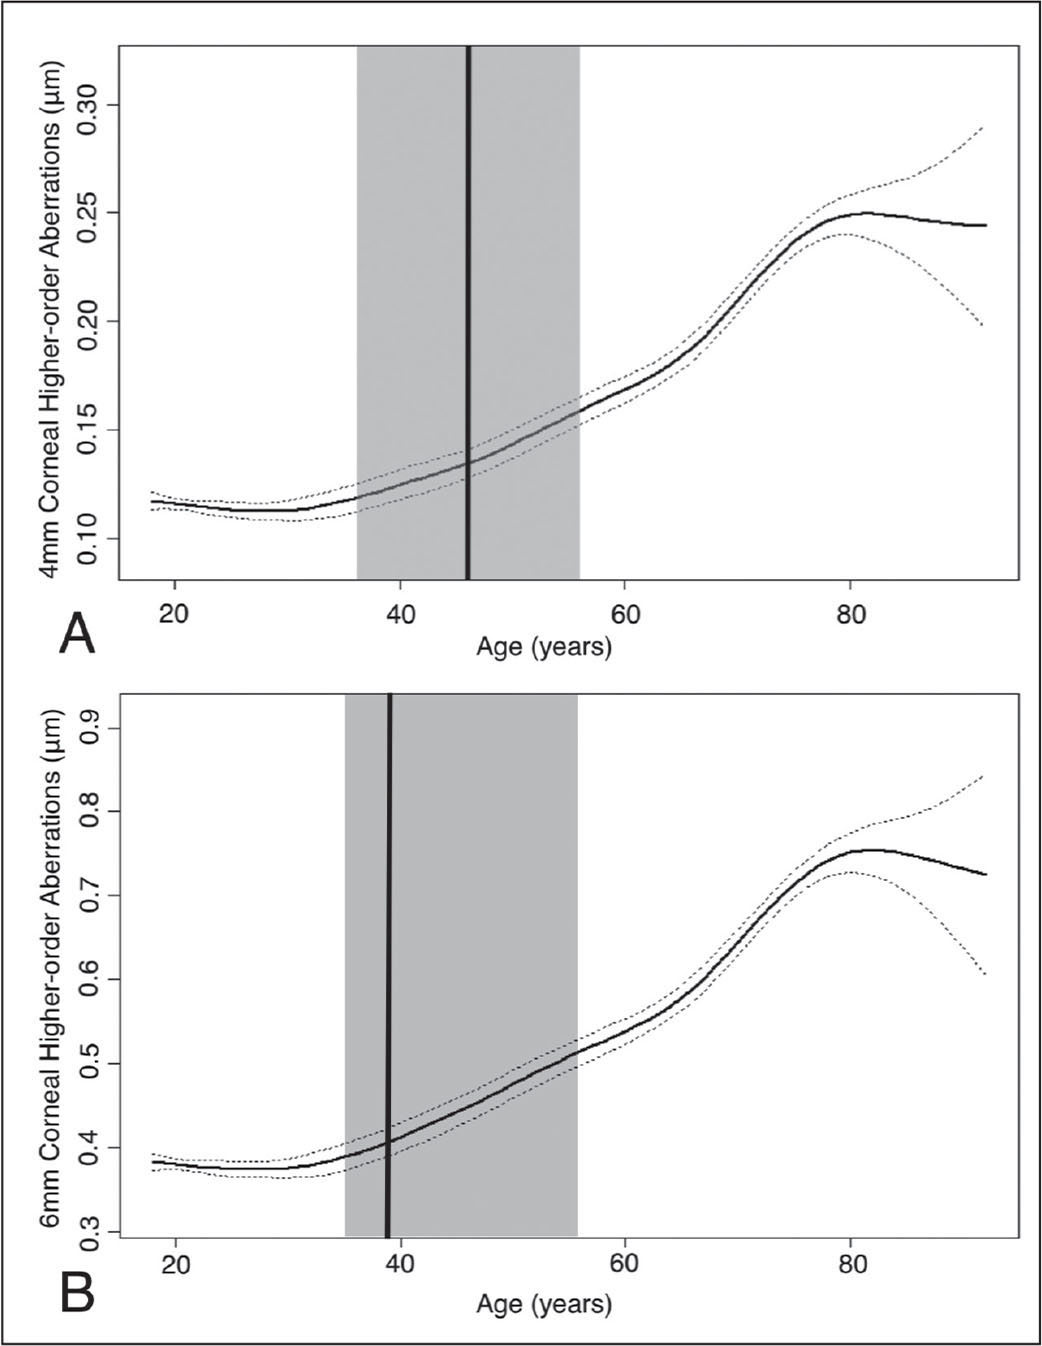 Smoothed fitting curves of higher order aberrations (HOAs) as a function of age. (A) The turning point of 4-mm HOAs was 46 years (95% confidence interval [CI]: 36 to 56. (B) The turning point of 6-mm HOAs was 39 years (95% CI: 35 to 56). The middle line represents the smoothed fitting curve and the upper and lower dotted lines represent the 95% CI of the smoothed fitting curve. The vertical line represents the turning point of age and the gray area signifies the 95% CI of the turning point.